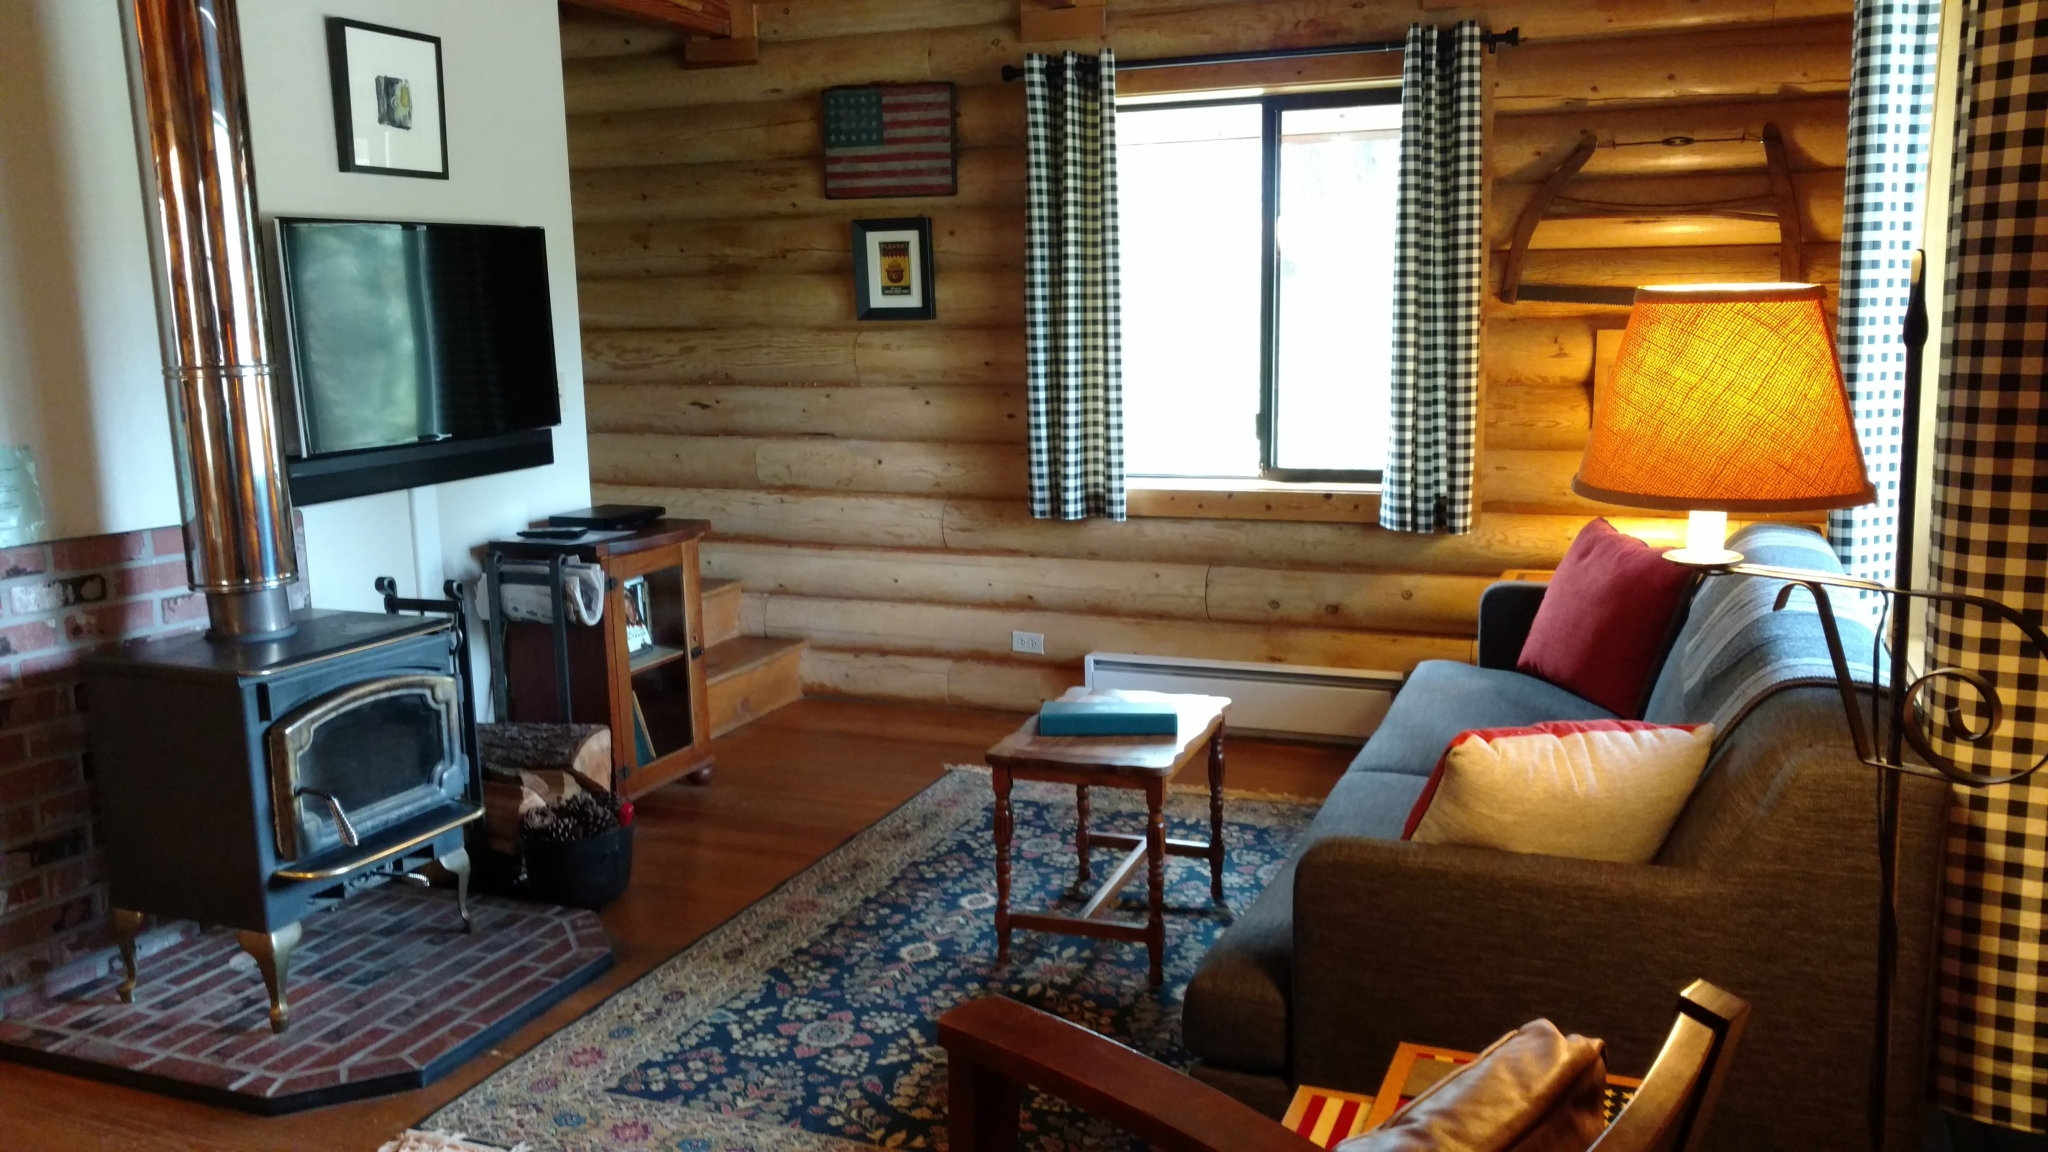 Stuchin living room with television and wood stove.